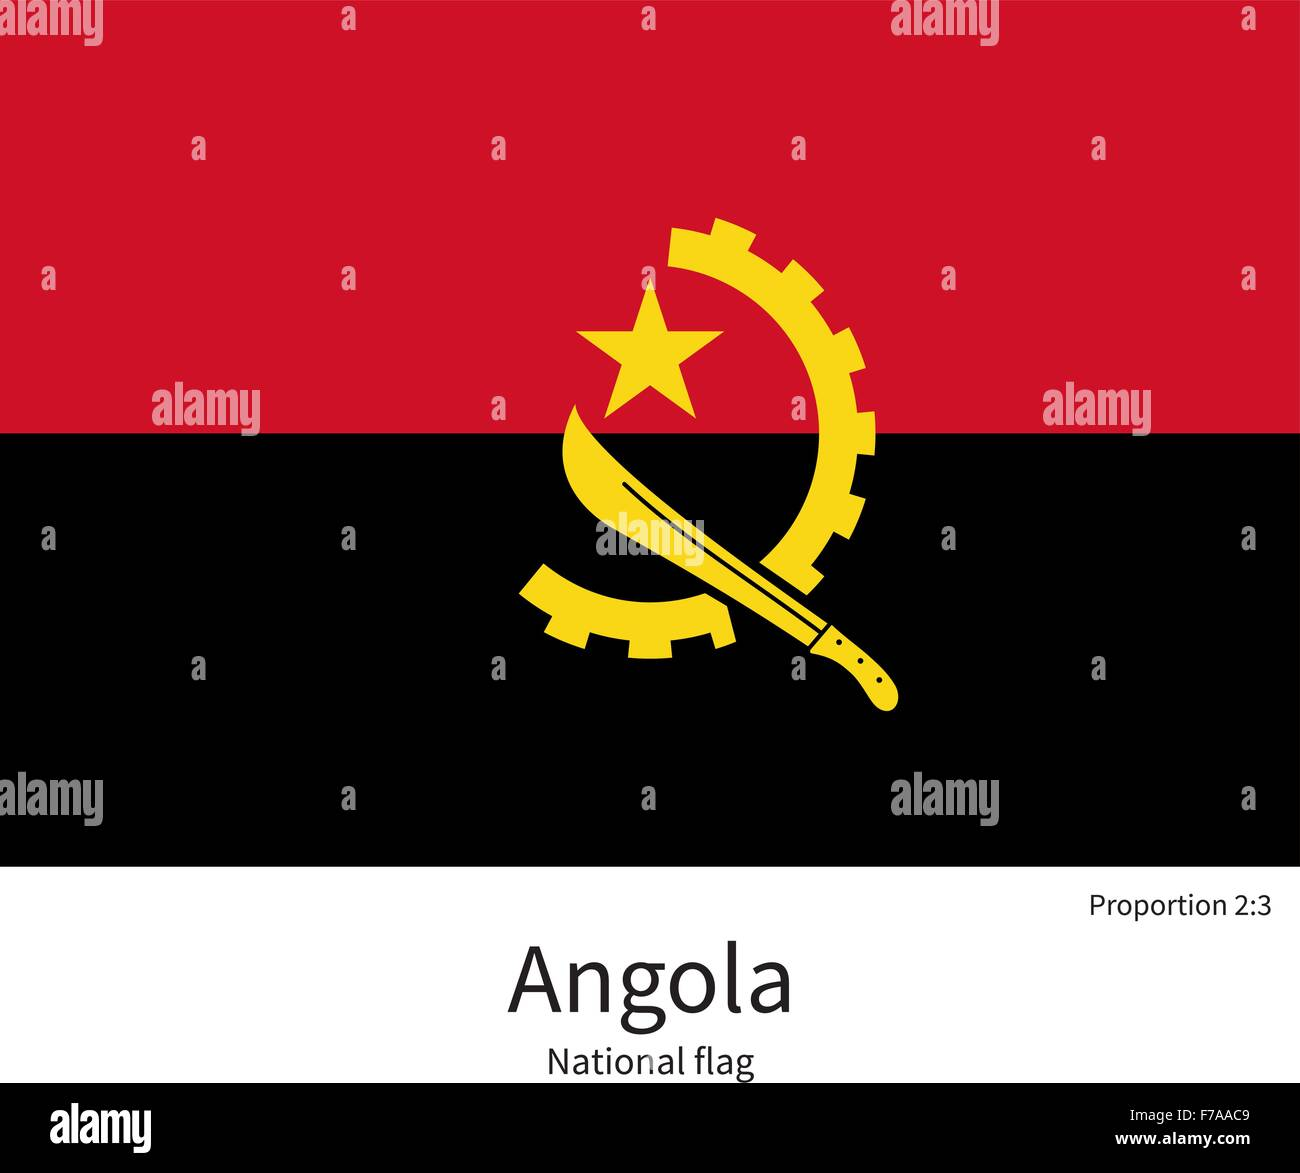 National flag of Angola with correct proportions, element, colors - Stock Vector